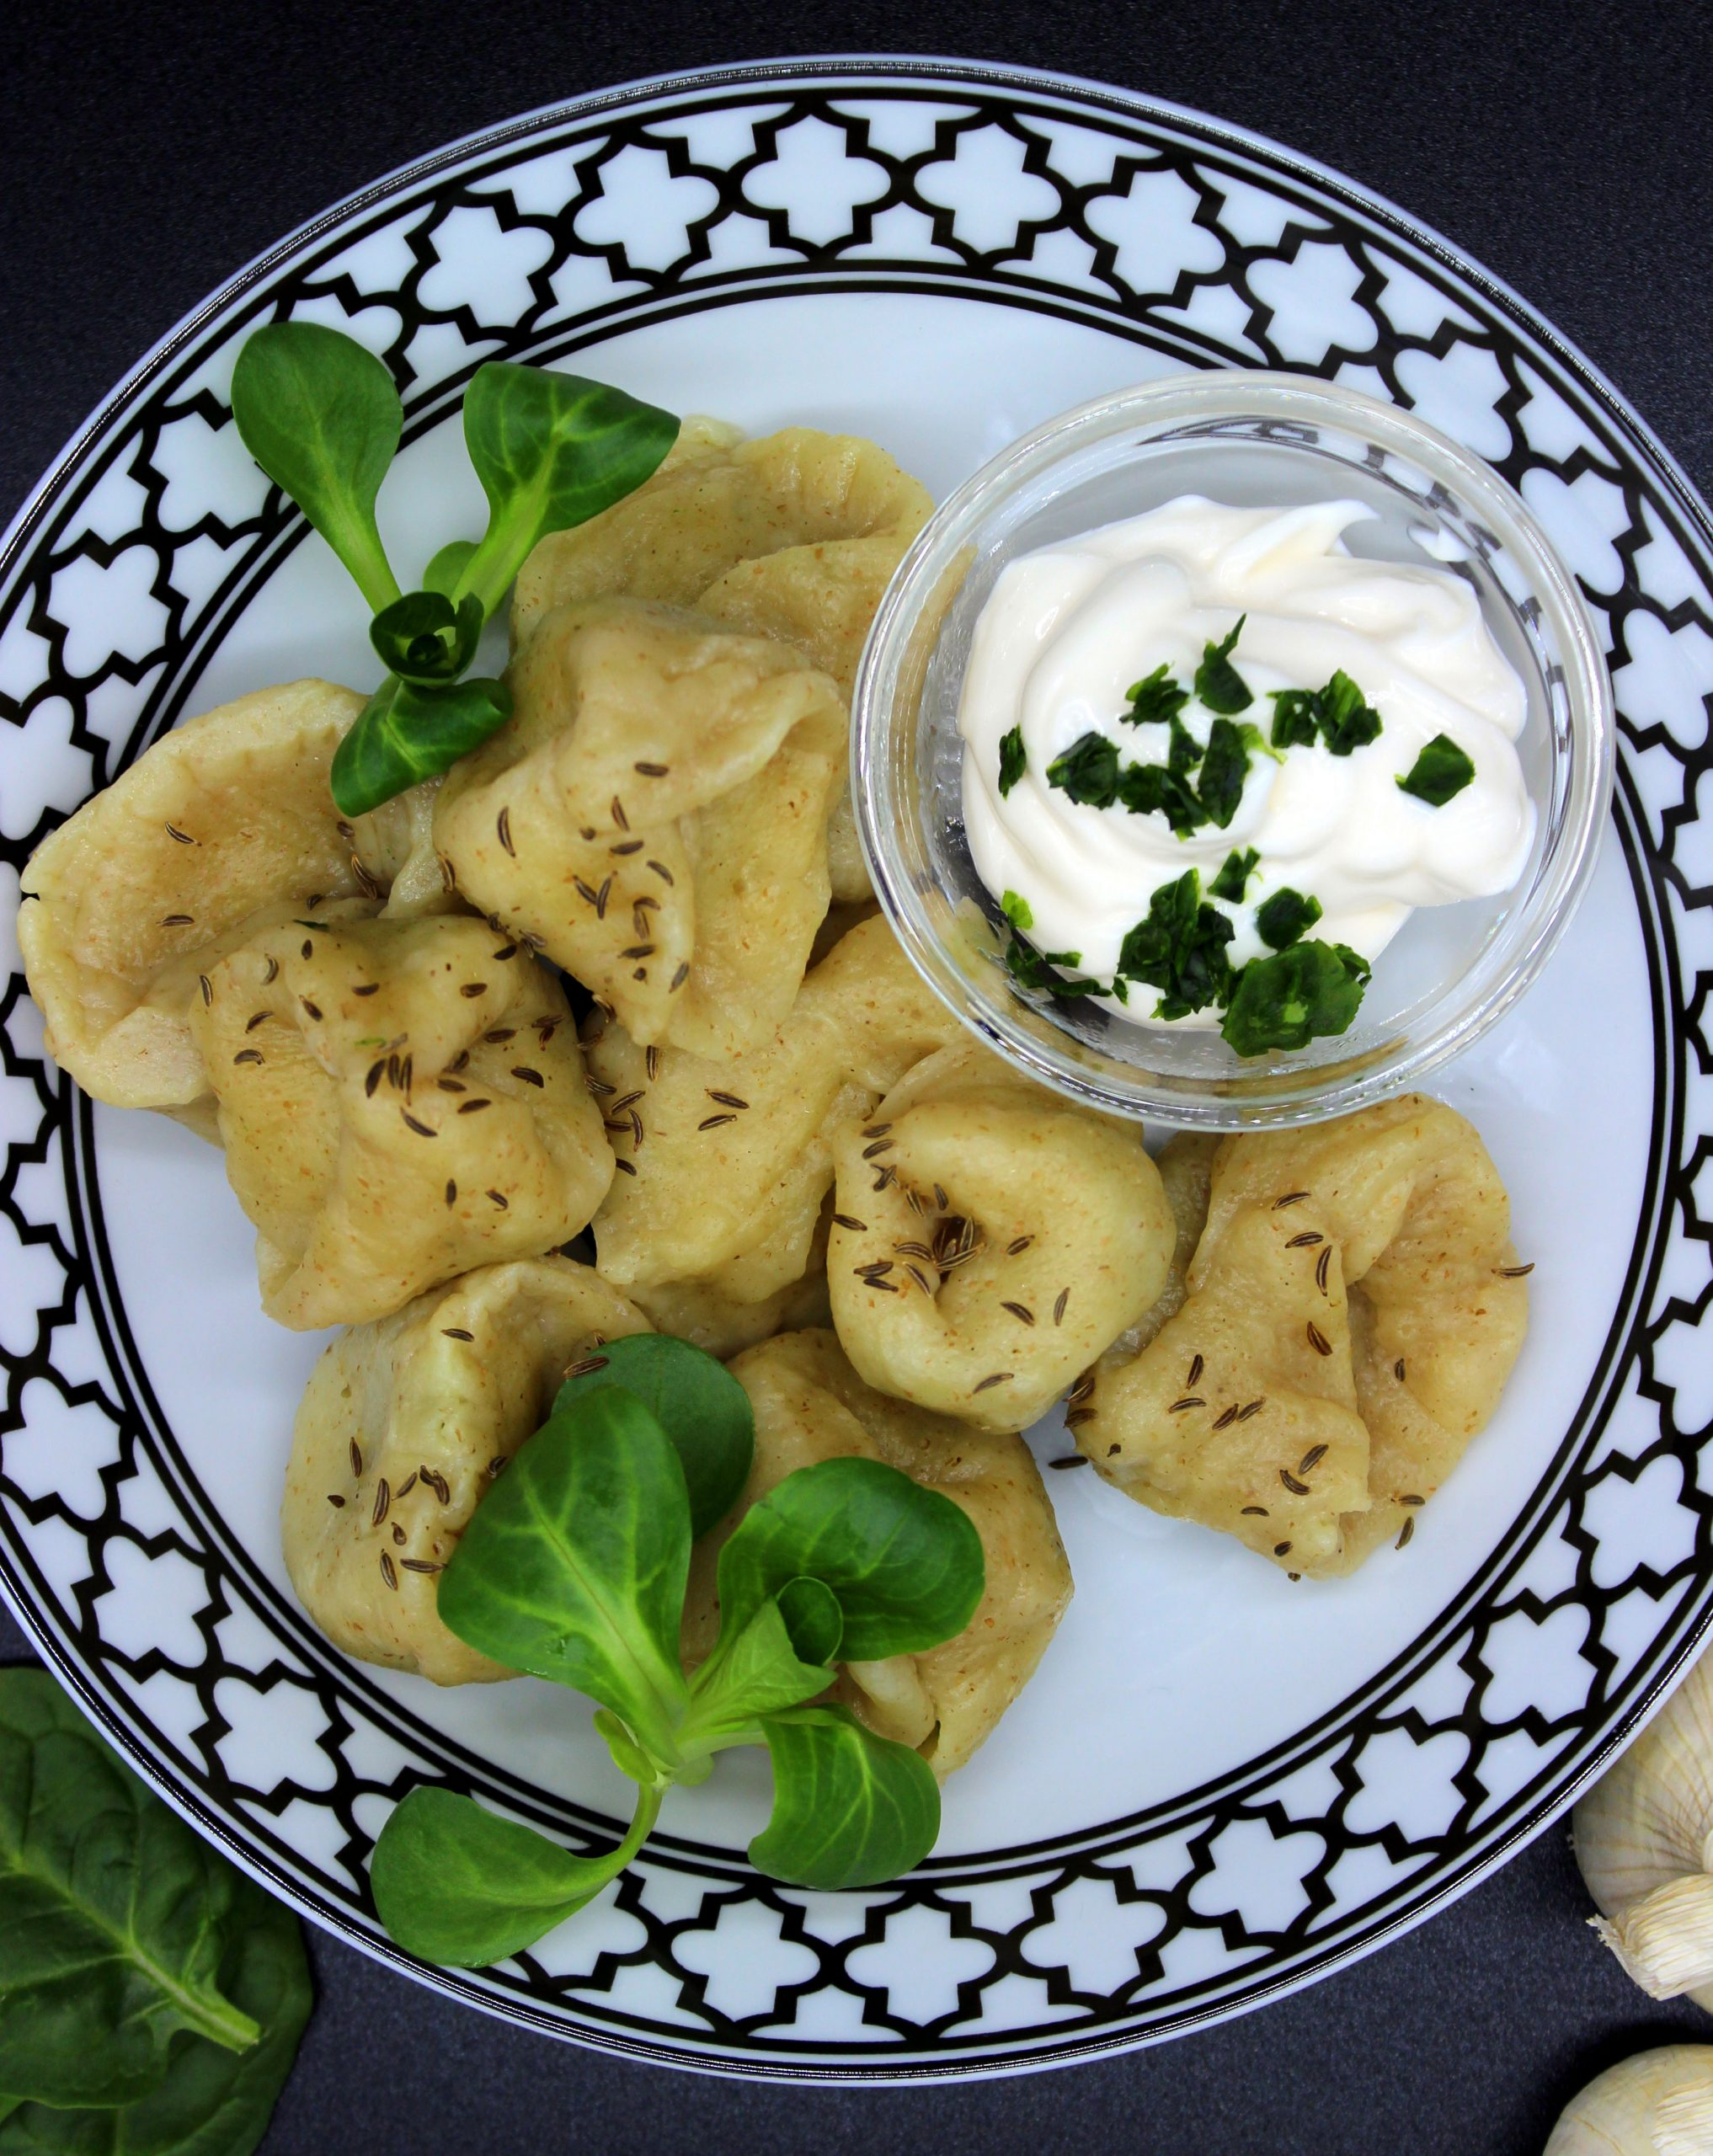 Vegan Russian dumplings with spinach and mushrooms